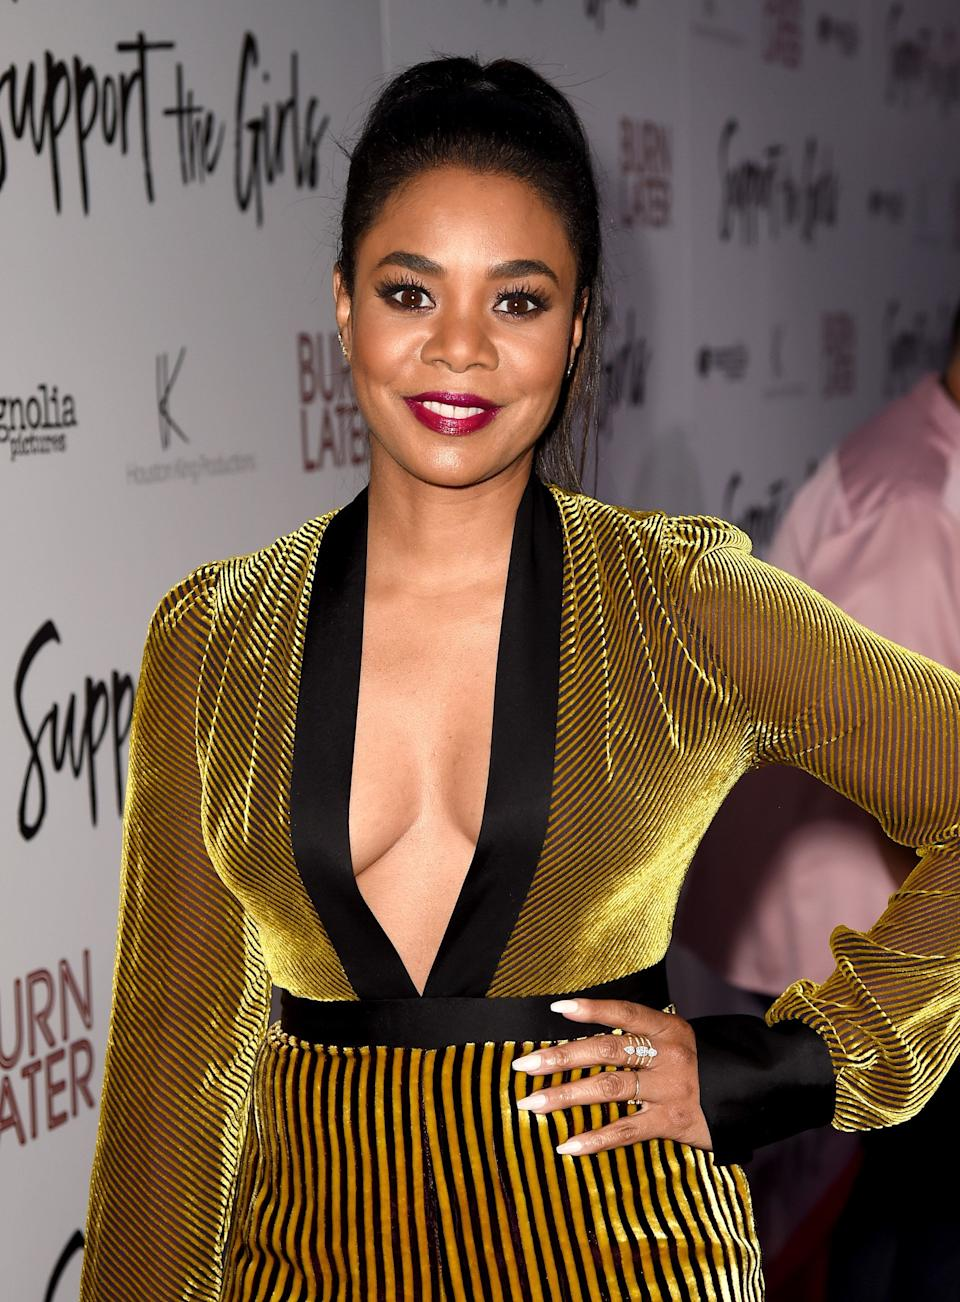 LOS ANGELES, CA - AUGUST 22:  Actress Regina Hall arrives at the premiere of Magnolia Pictures' 'Support The Girls' at the Arclight Theatre on August 22, 2018 in Los Angeles, California.  (Photo by Kevin Winter/Getty Images)